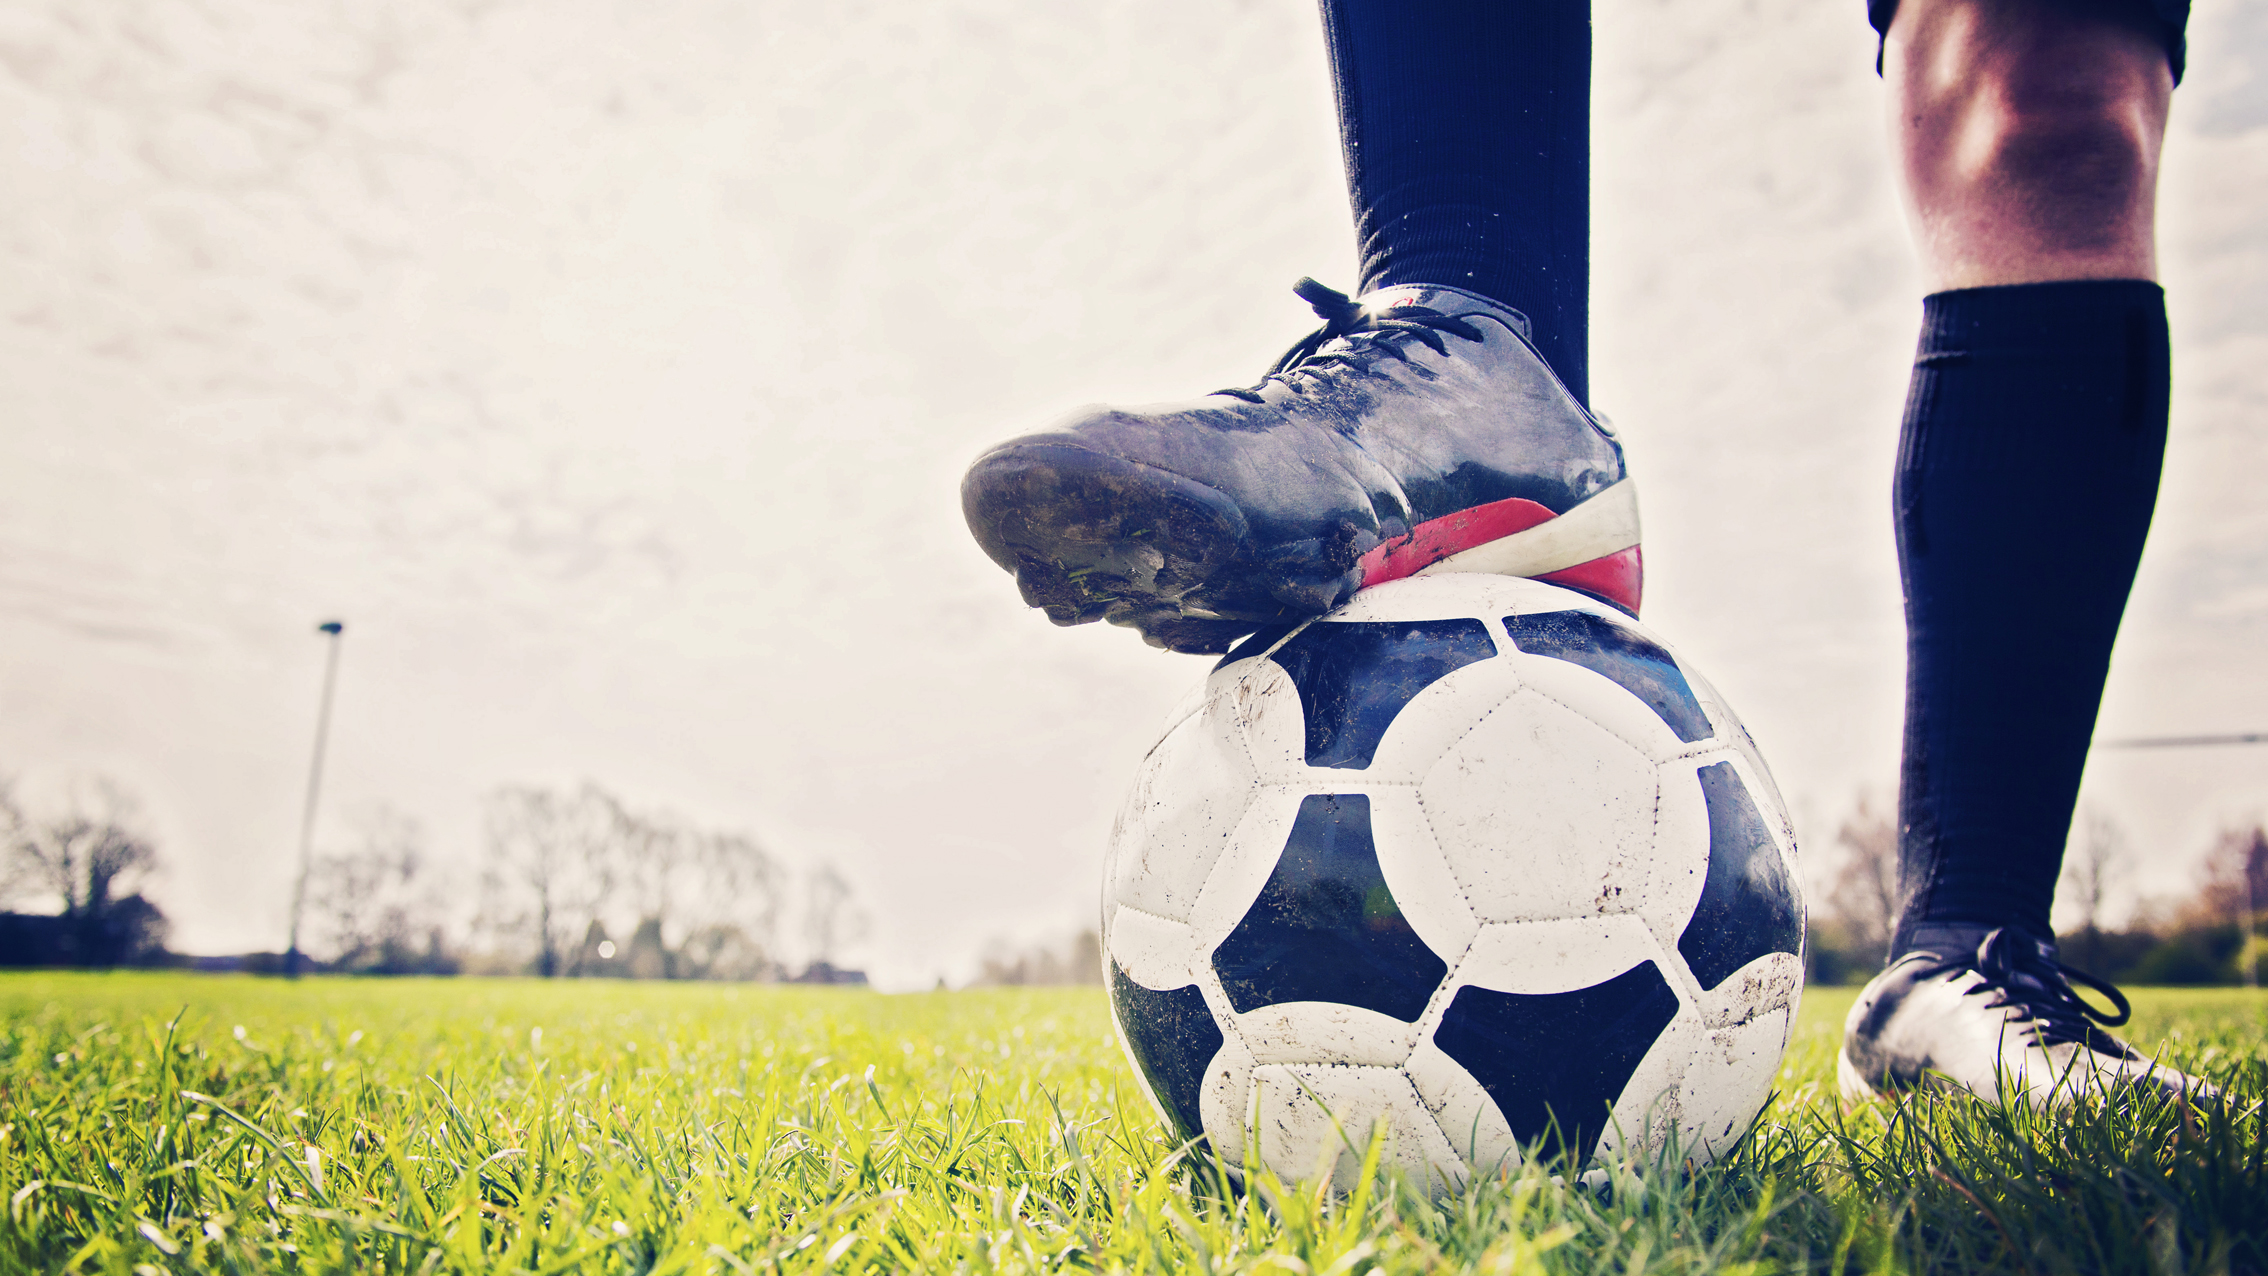 cfa6975a66d57 Best football boots for the 2018 19 season  here s our first 11